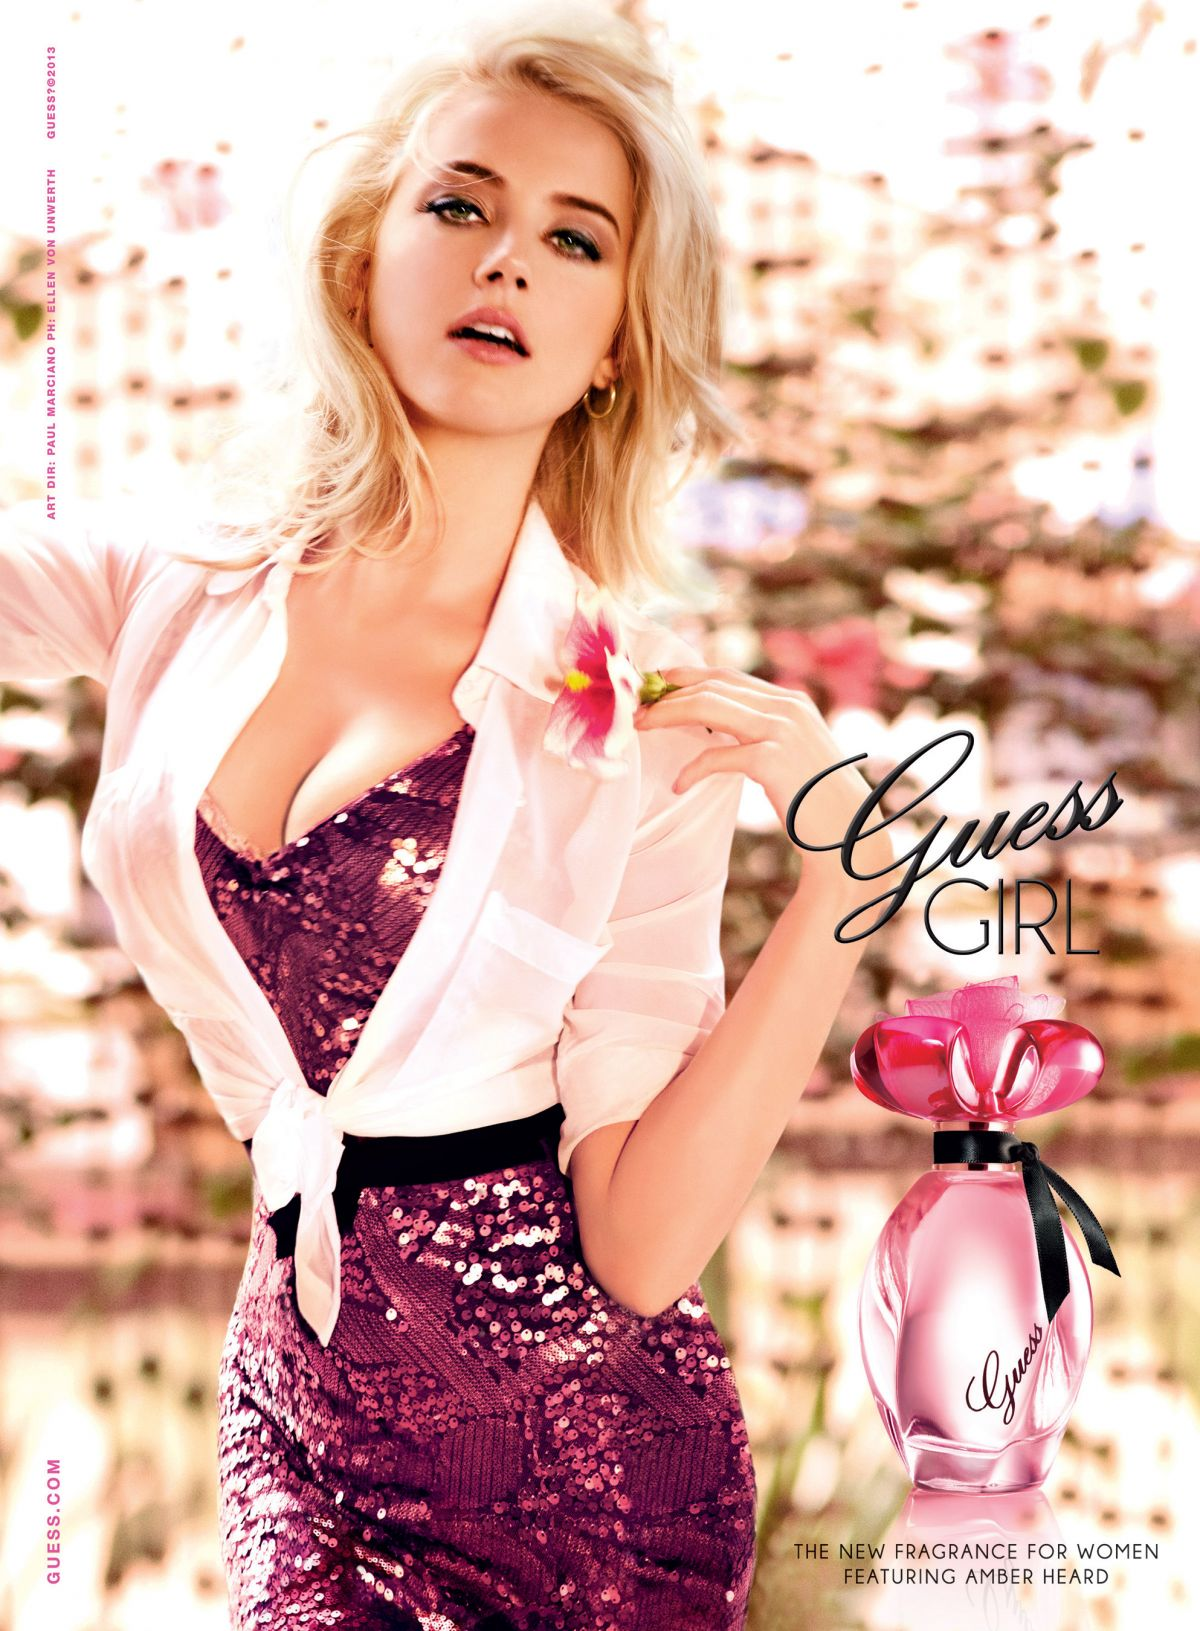 AMBER HEARD - Guess Girl Campaing